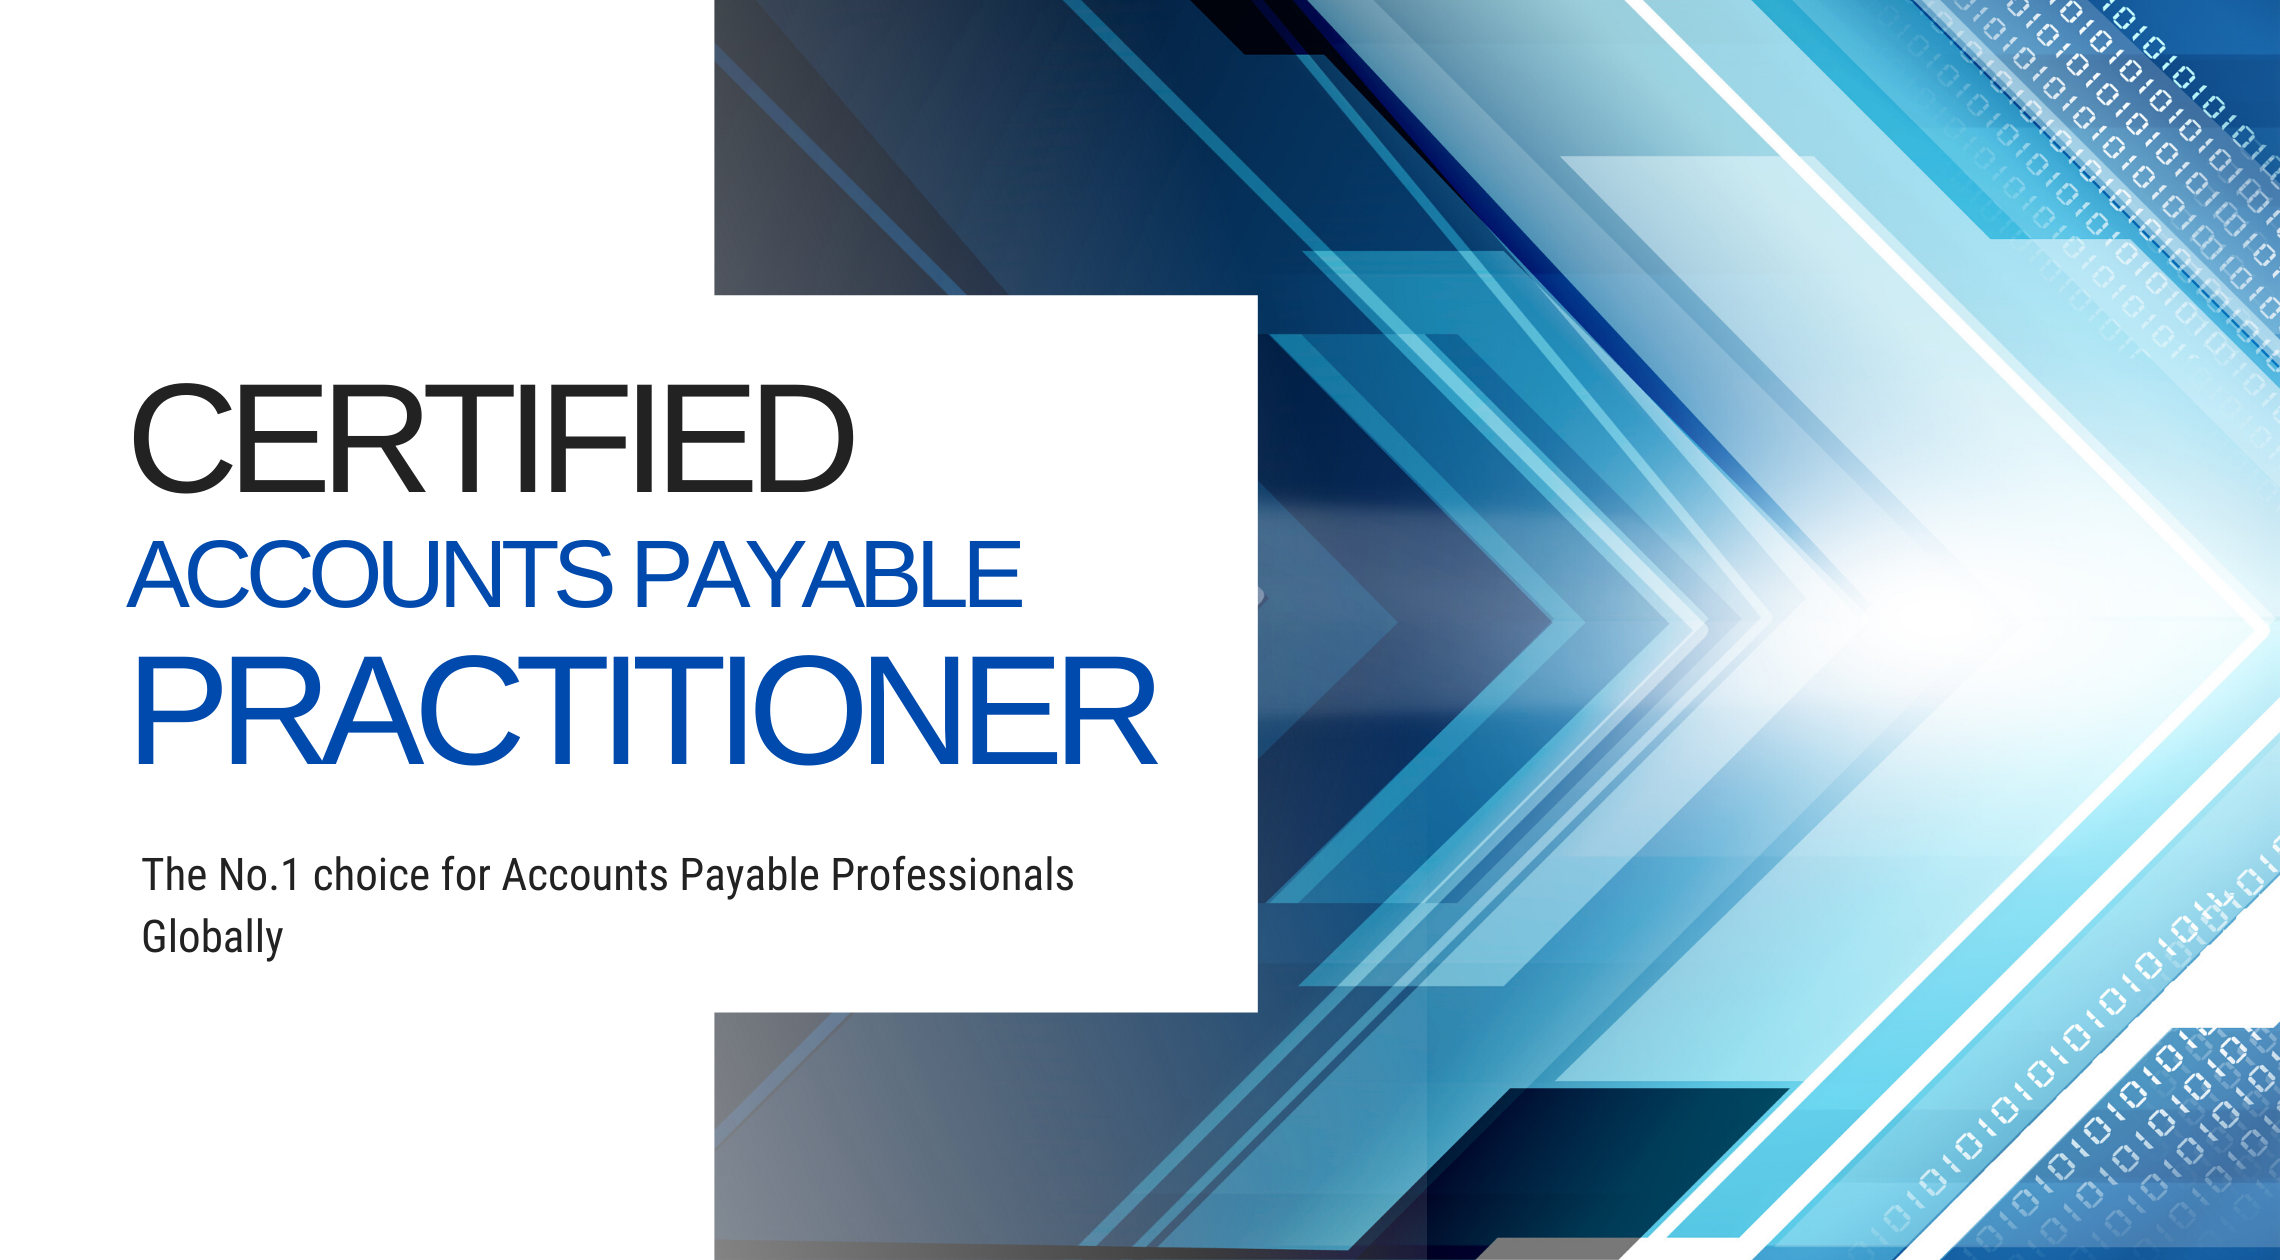 ACAPP Certified Accounts Payable Practitioner (CAPP)